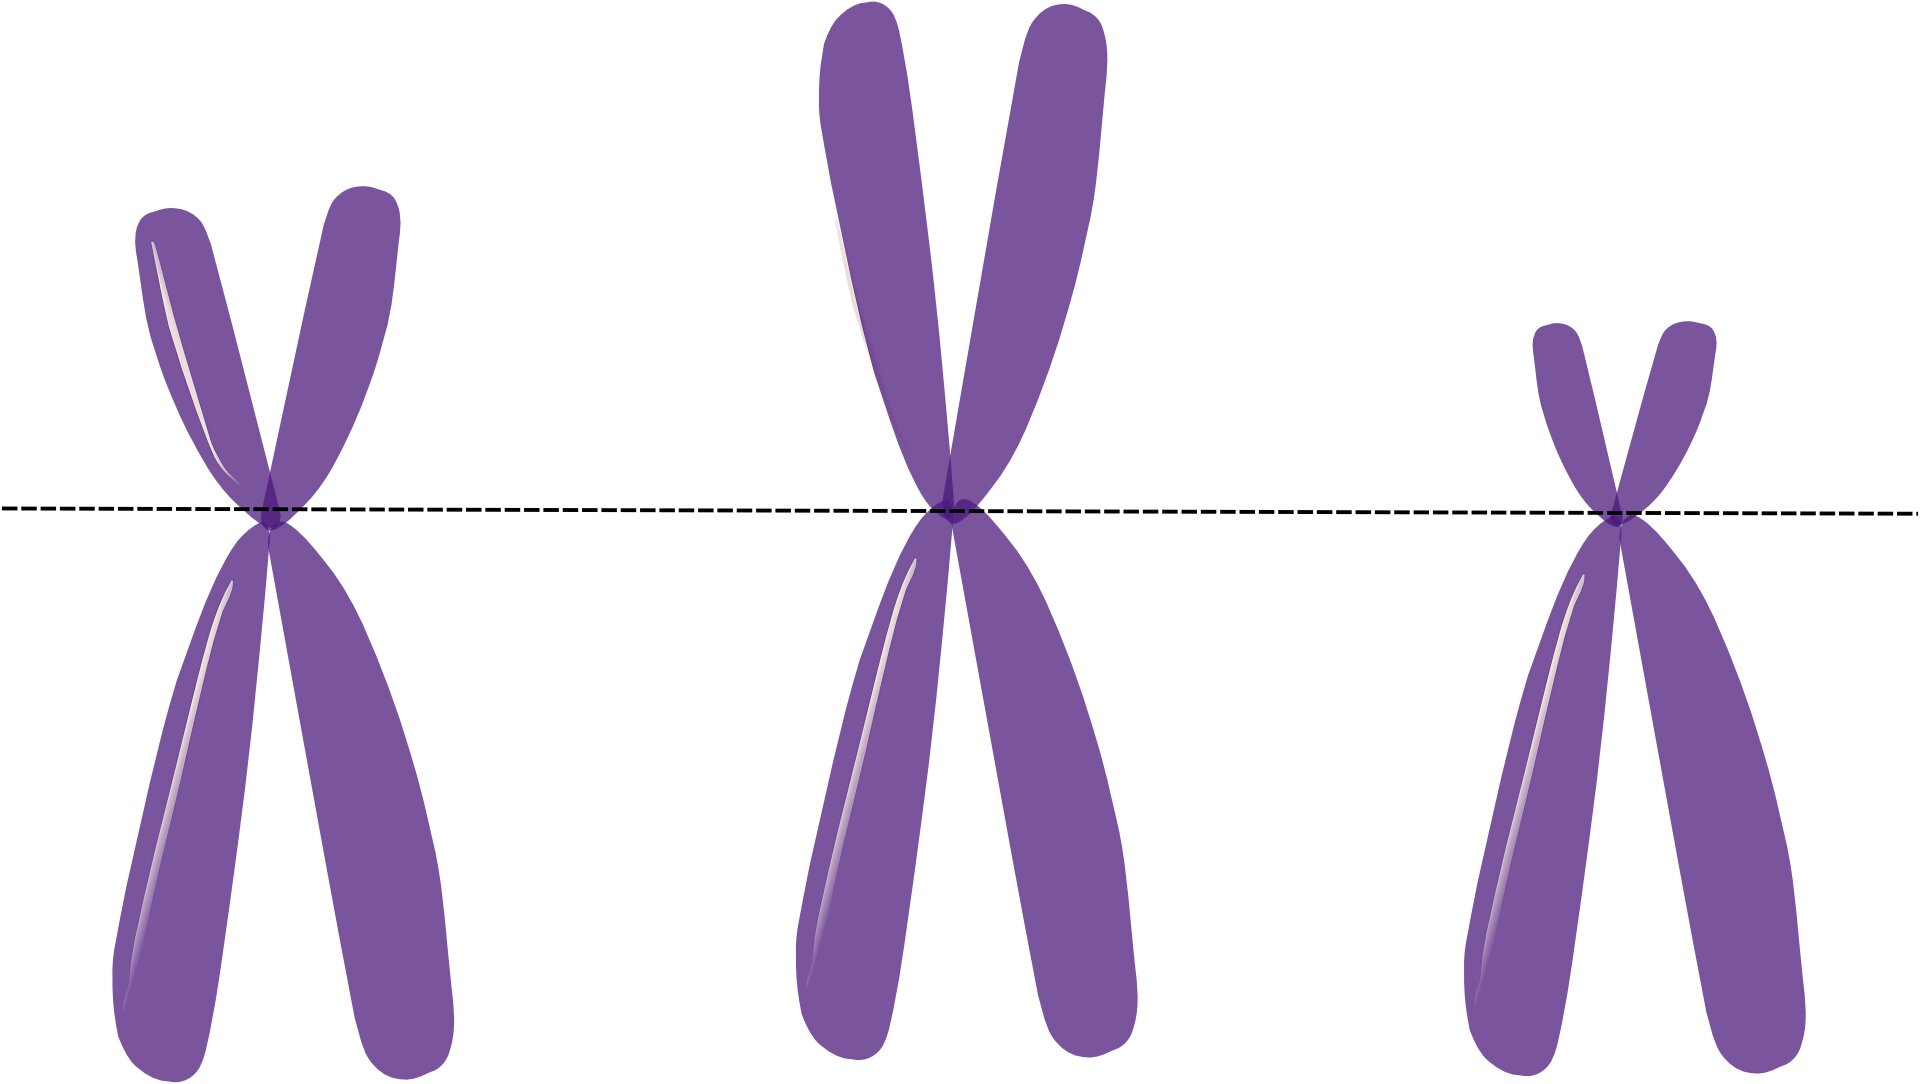 The male Y chromosome does more than we thought